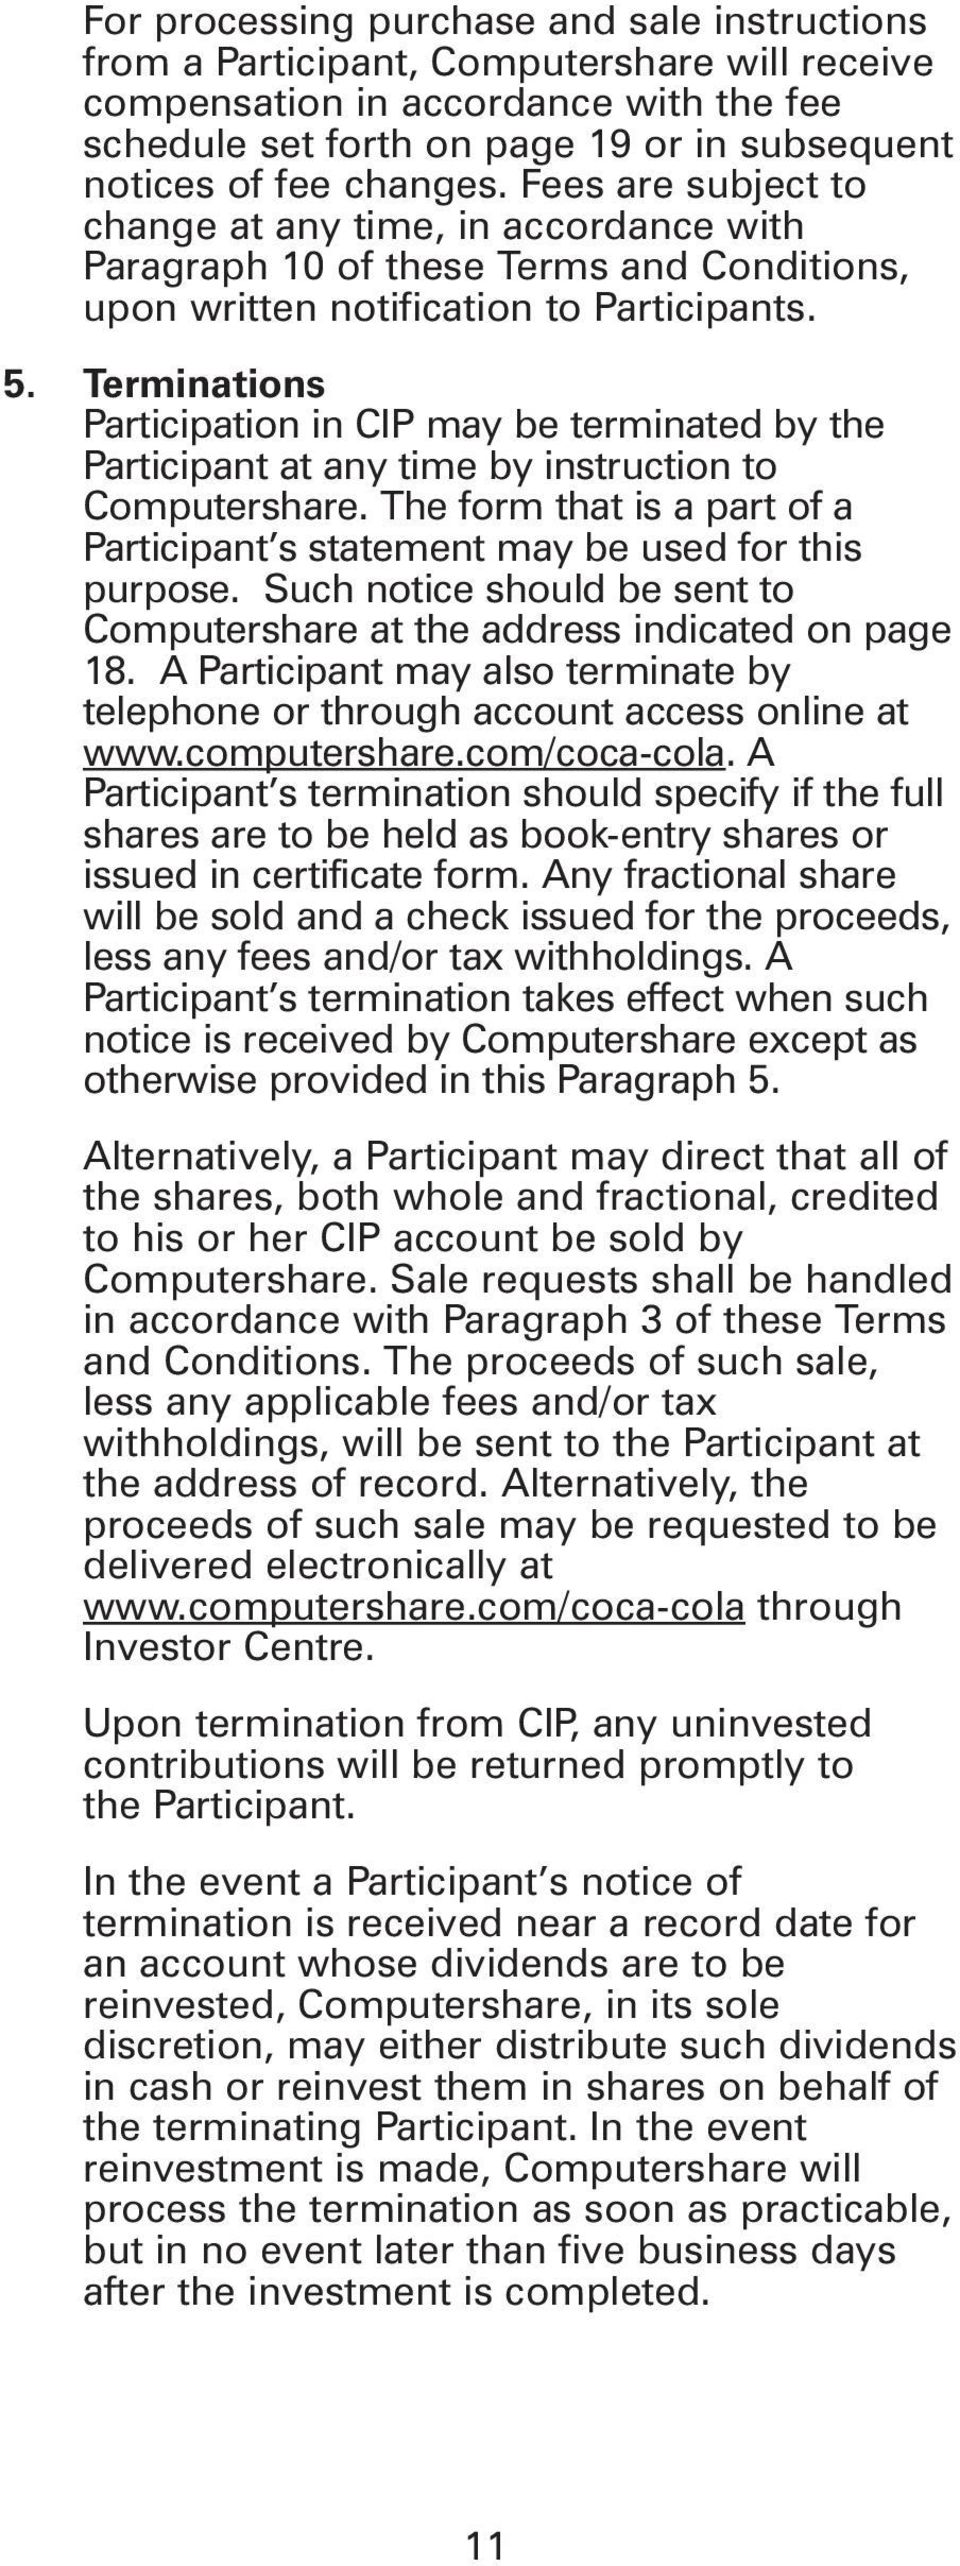 Terminations Participation in CIP may be terminated by the Participant at any time by instruction to Computershare. The form that is a part of a Participant s statement may be used for this purpose.